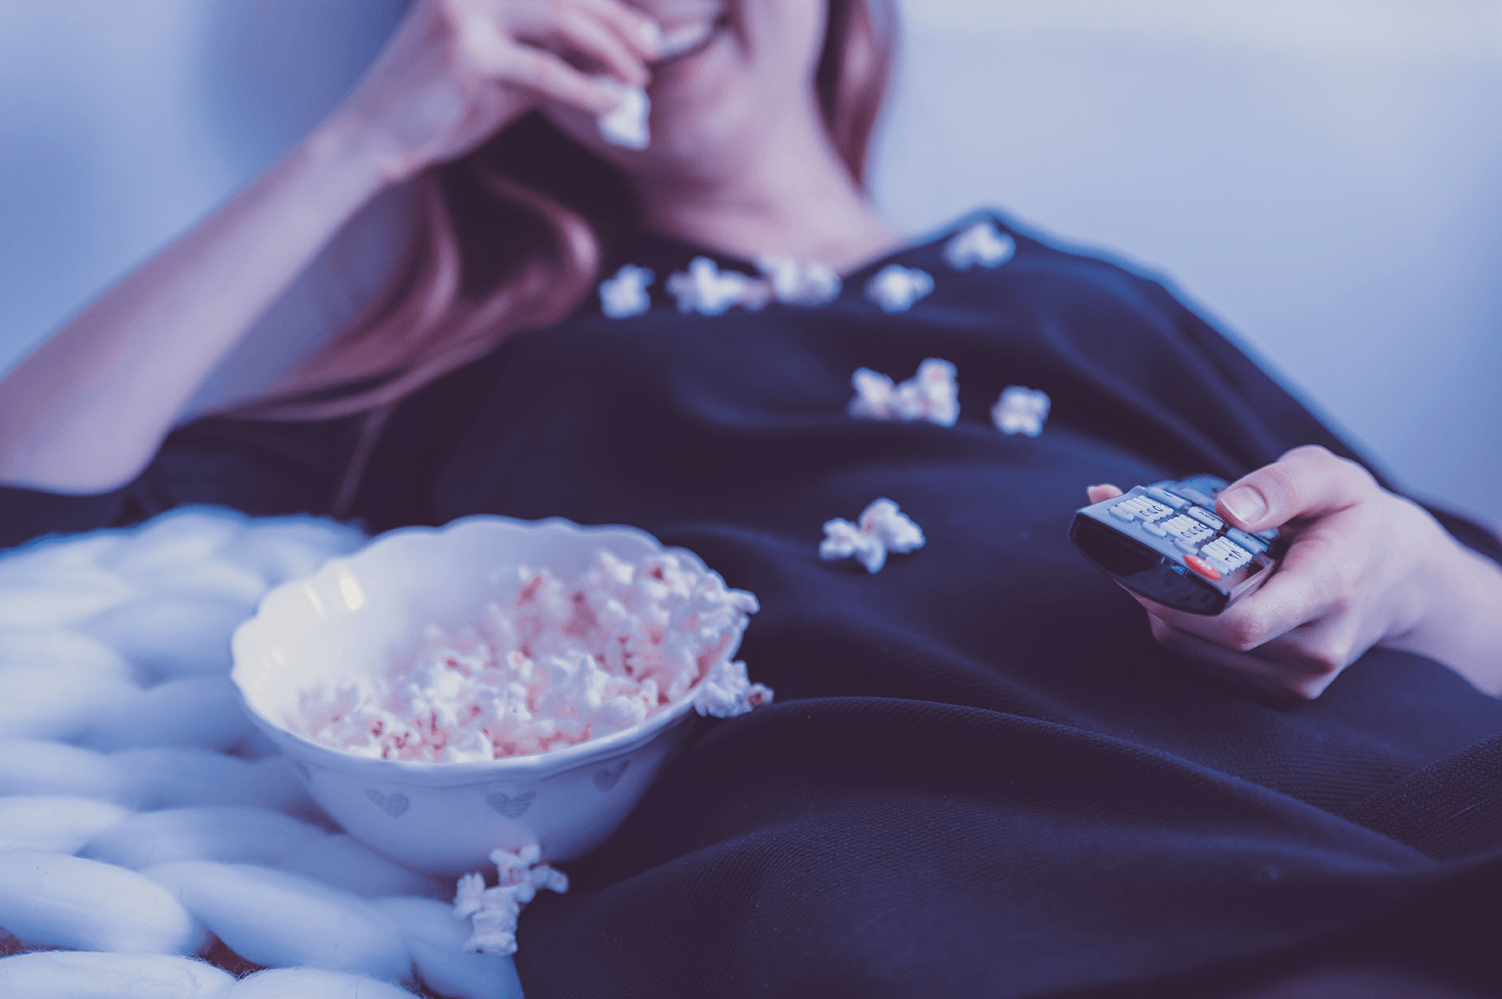 Woman lying back while eating popcorn with remote in her hand